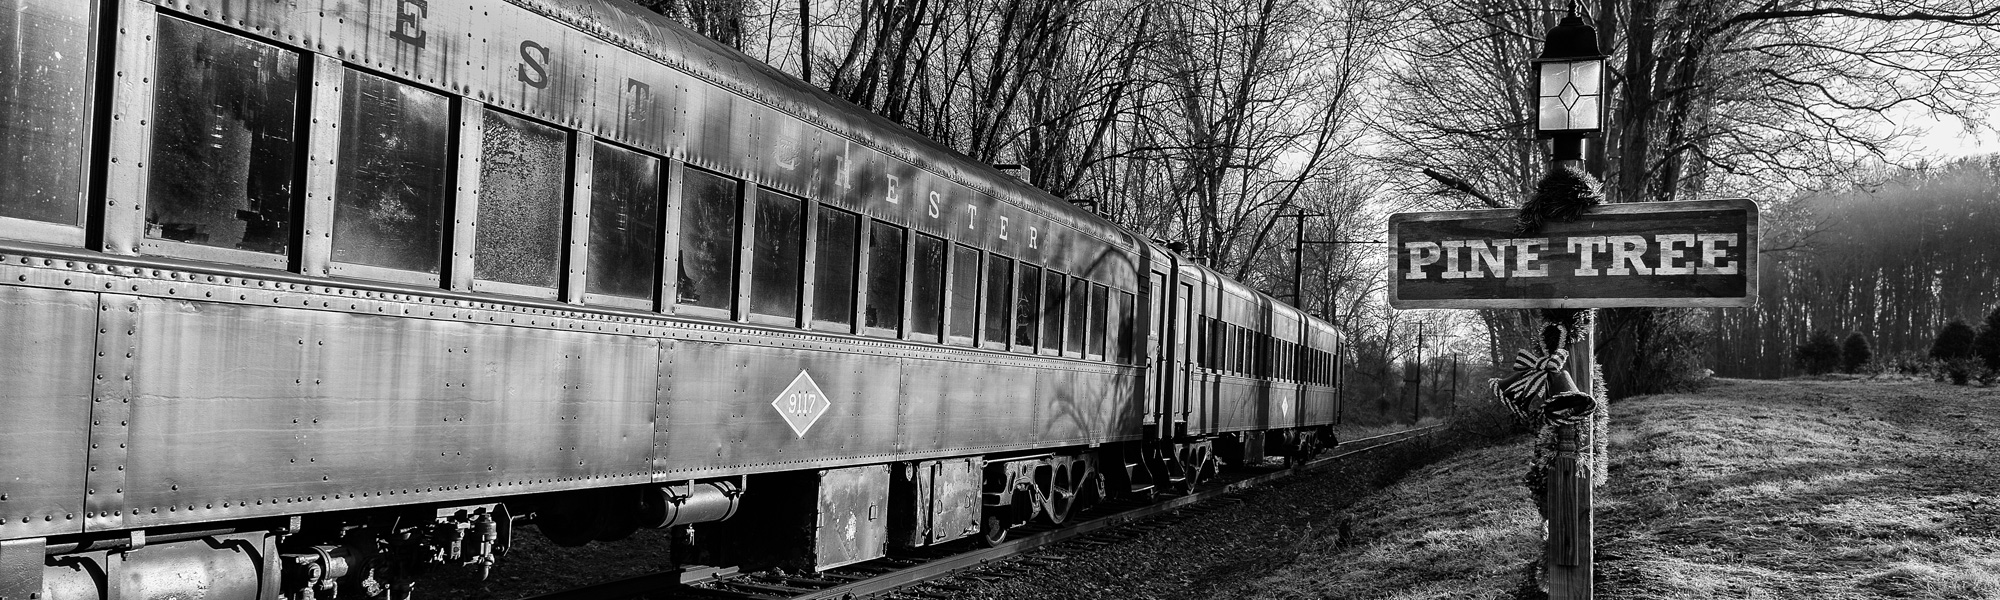 West Chester Railroad - West Chester, PA